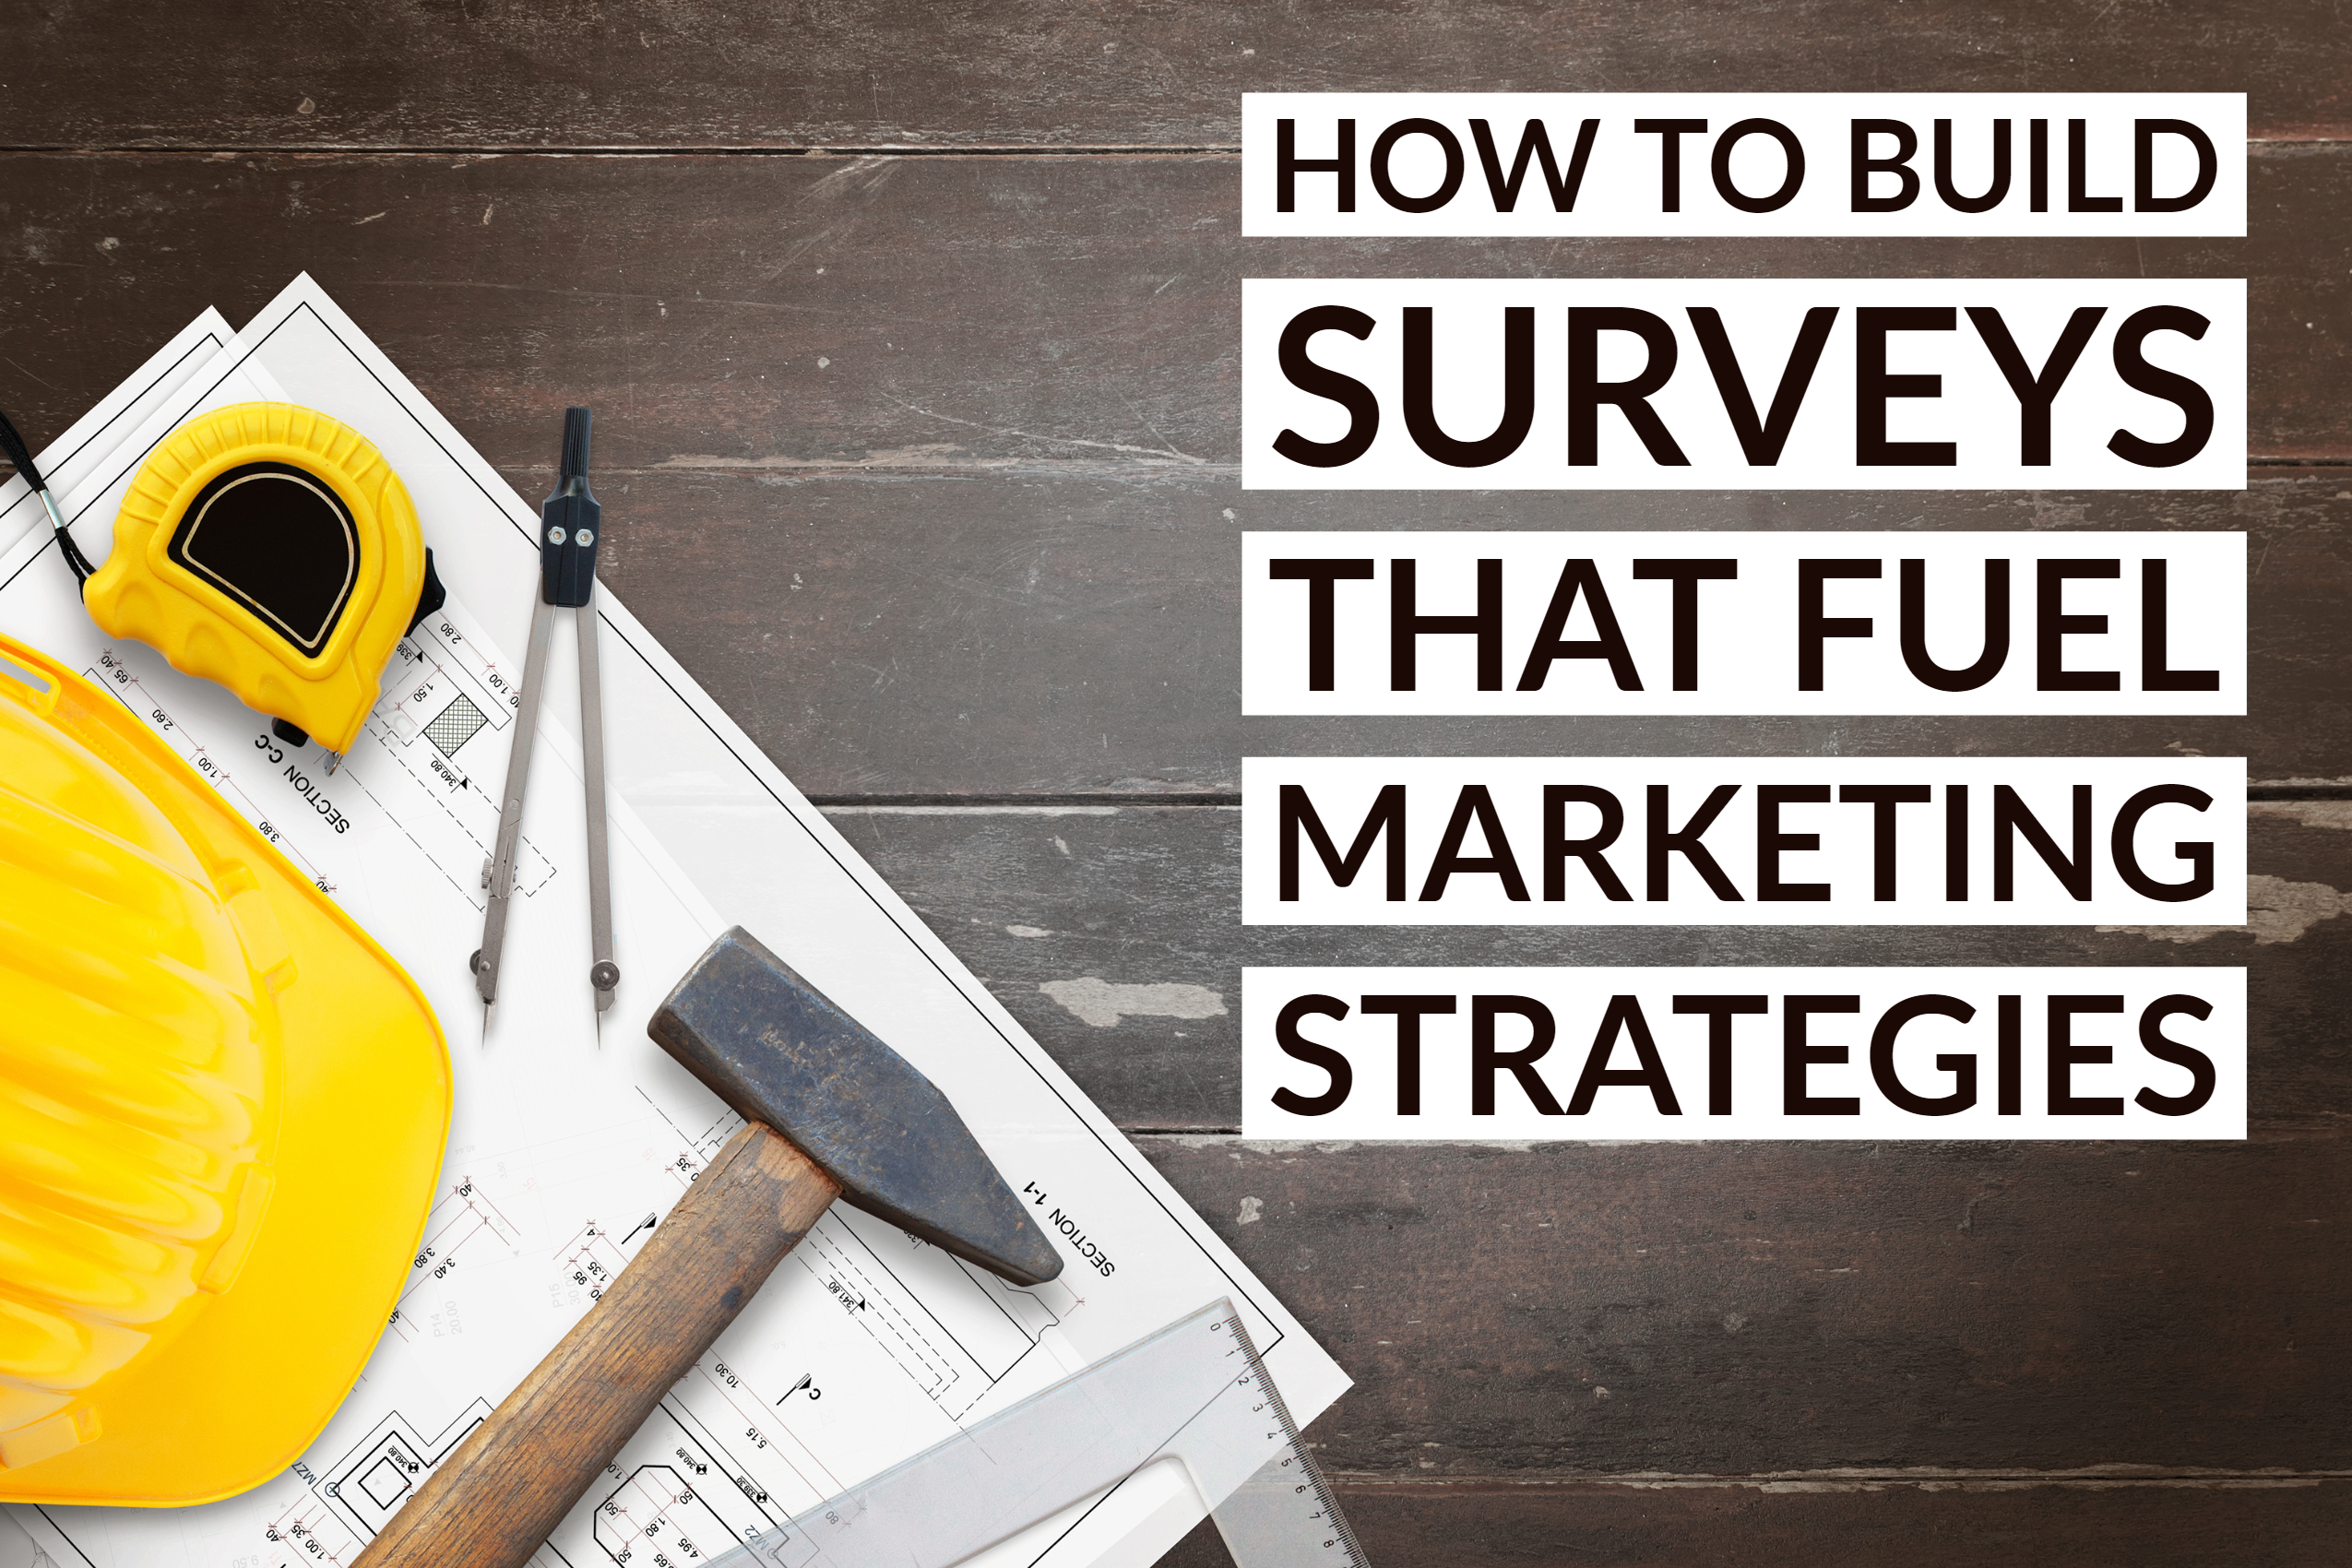 How To Build Surveys That Fuel Marketing Strategies